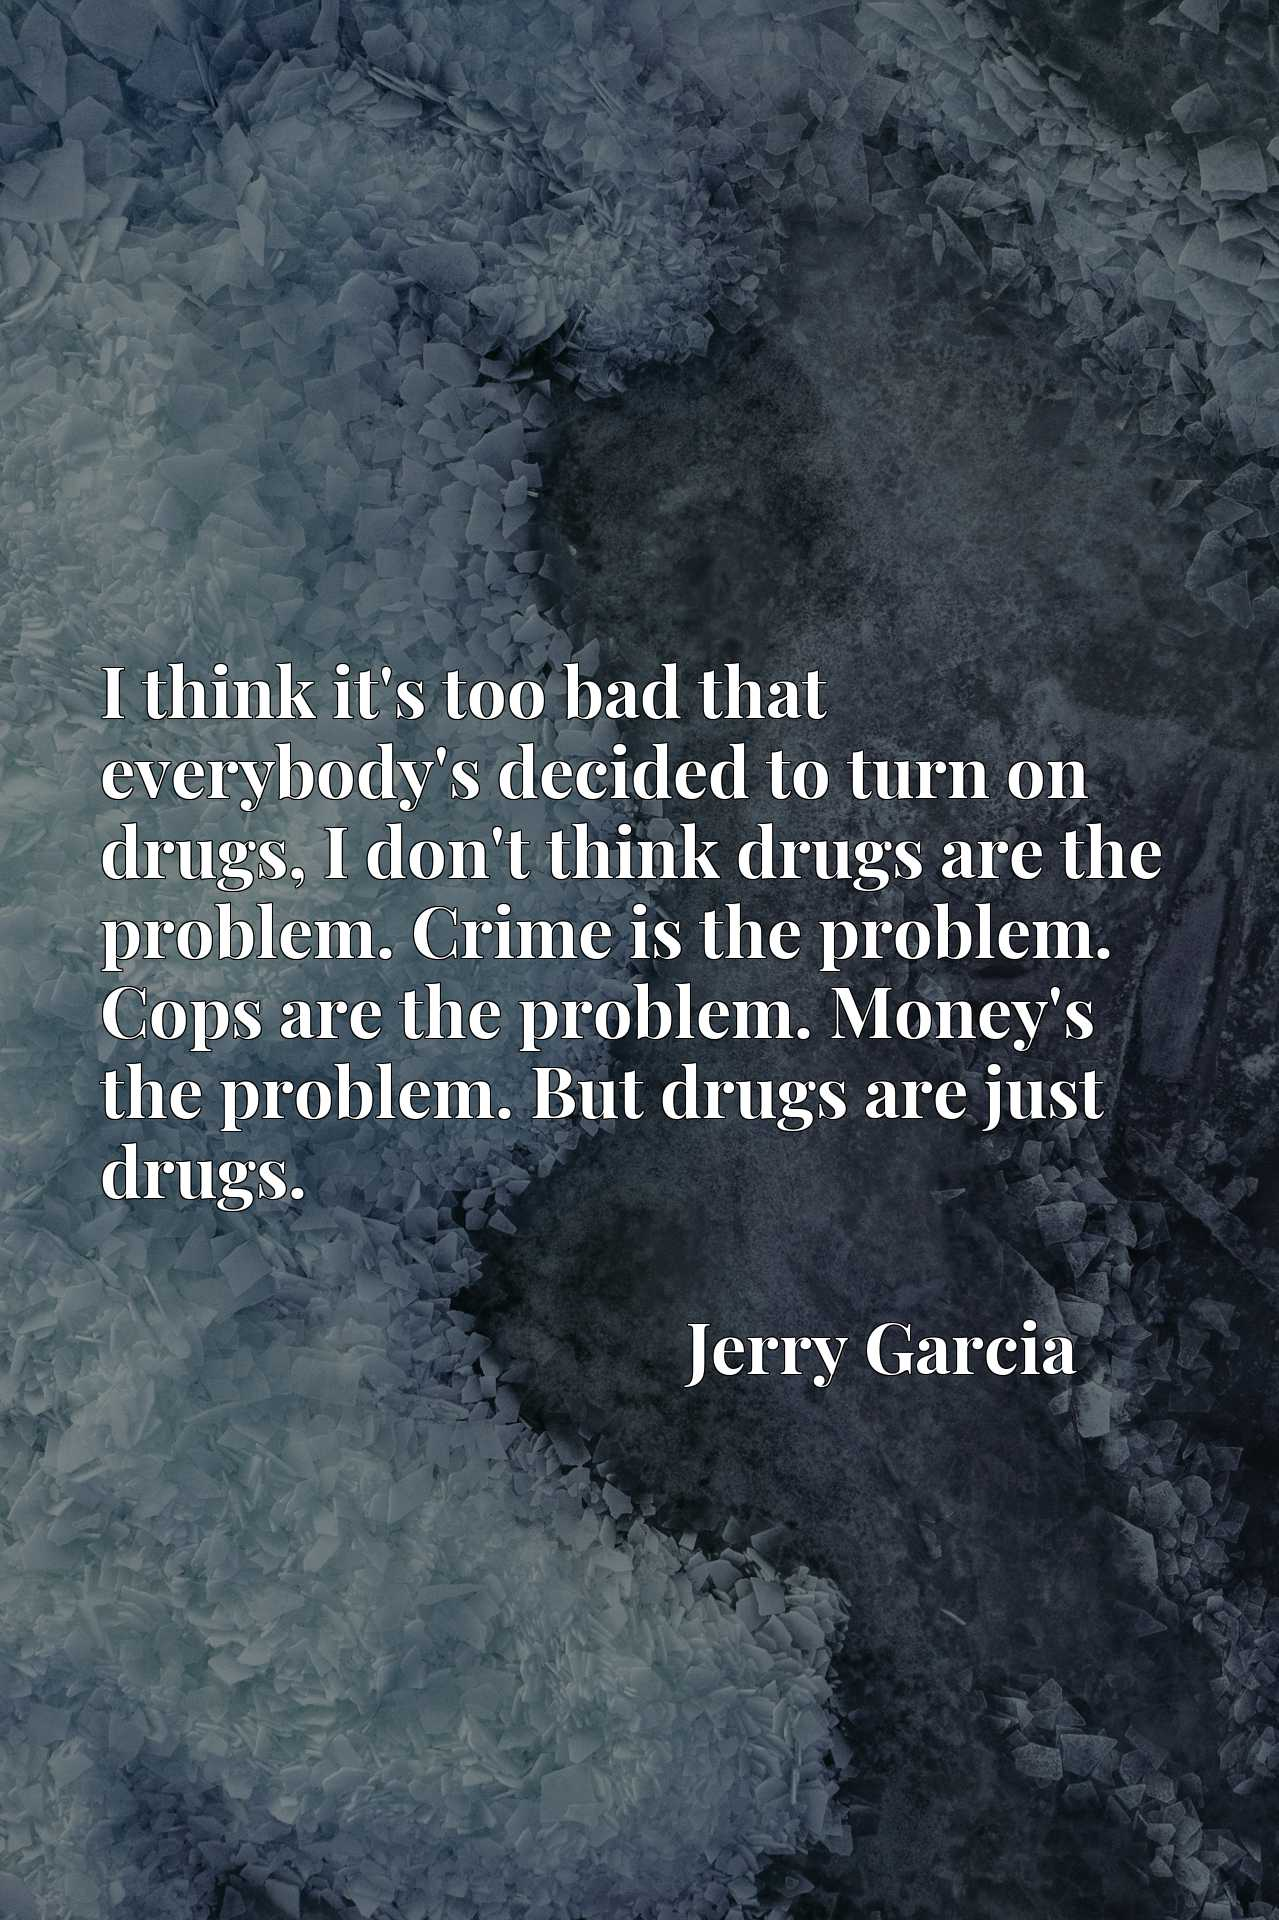 I think it's too bad that everybody's decided to turn on drugs, I don't think drugs are the problem. Crime is the problem. Cops are the problem. Money's the problem. But drugs are just drugs.